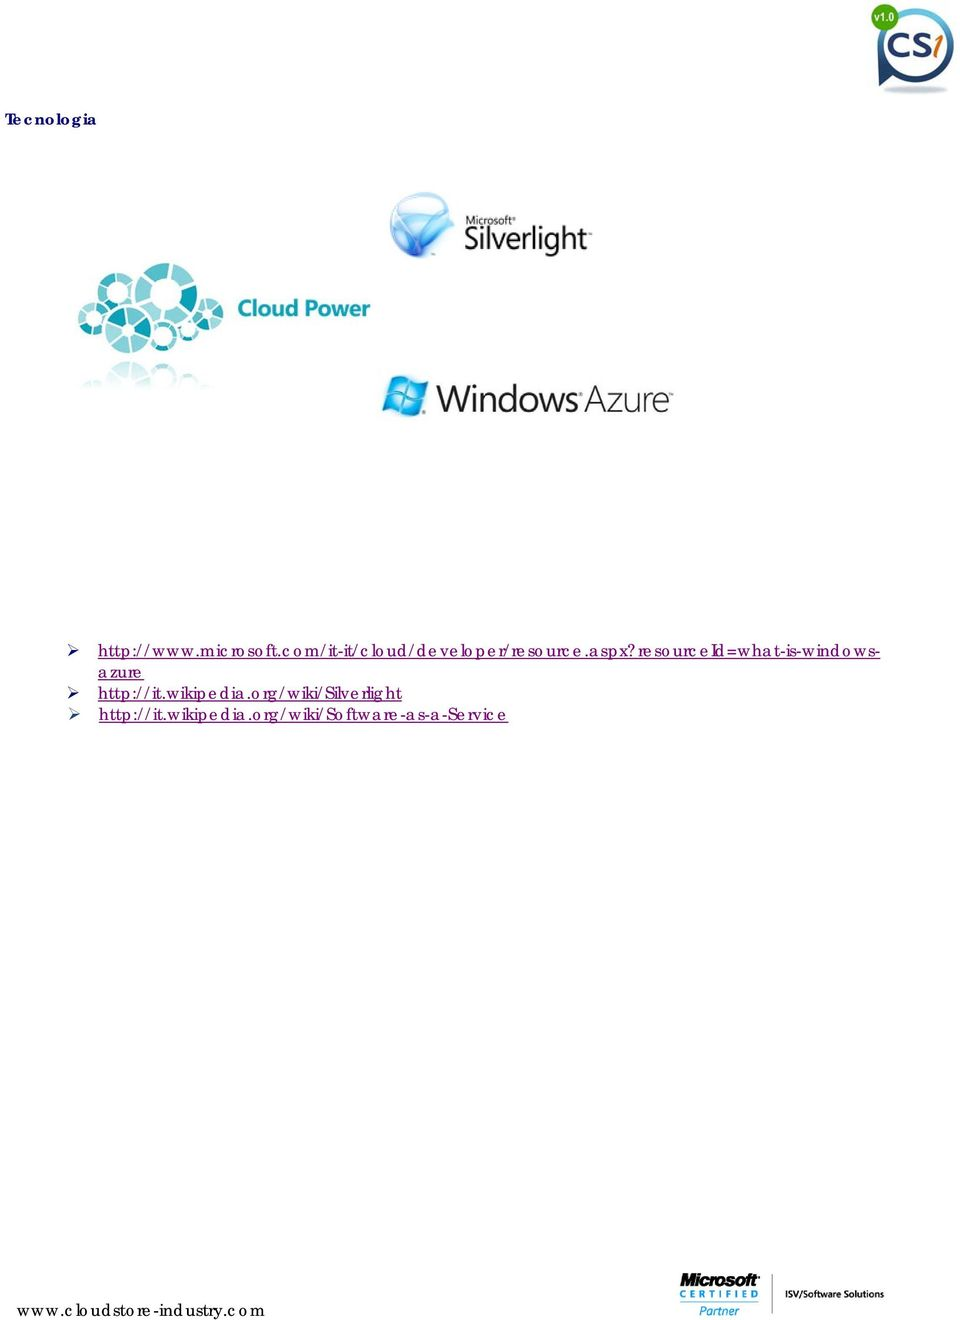 resourceid=what-is-windowsazure http://it.